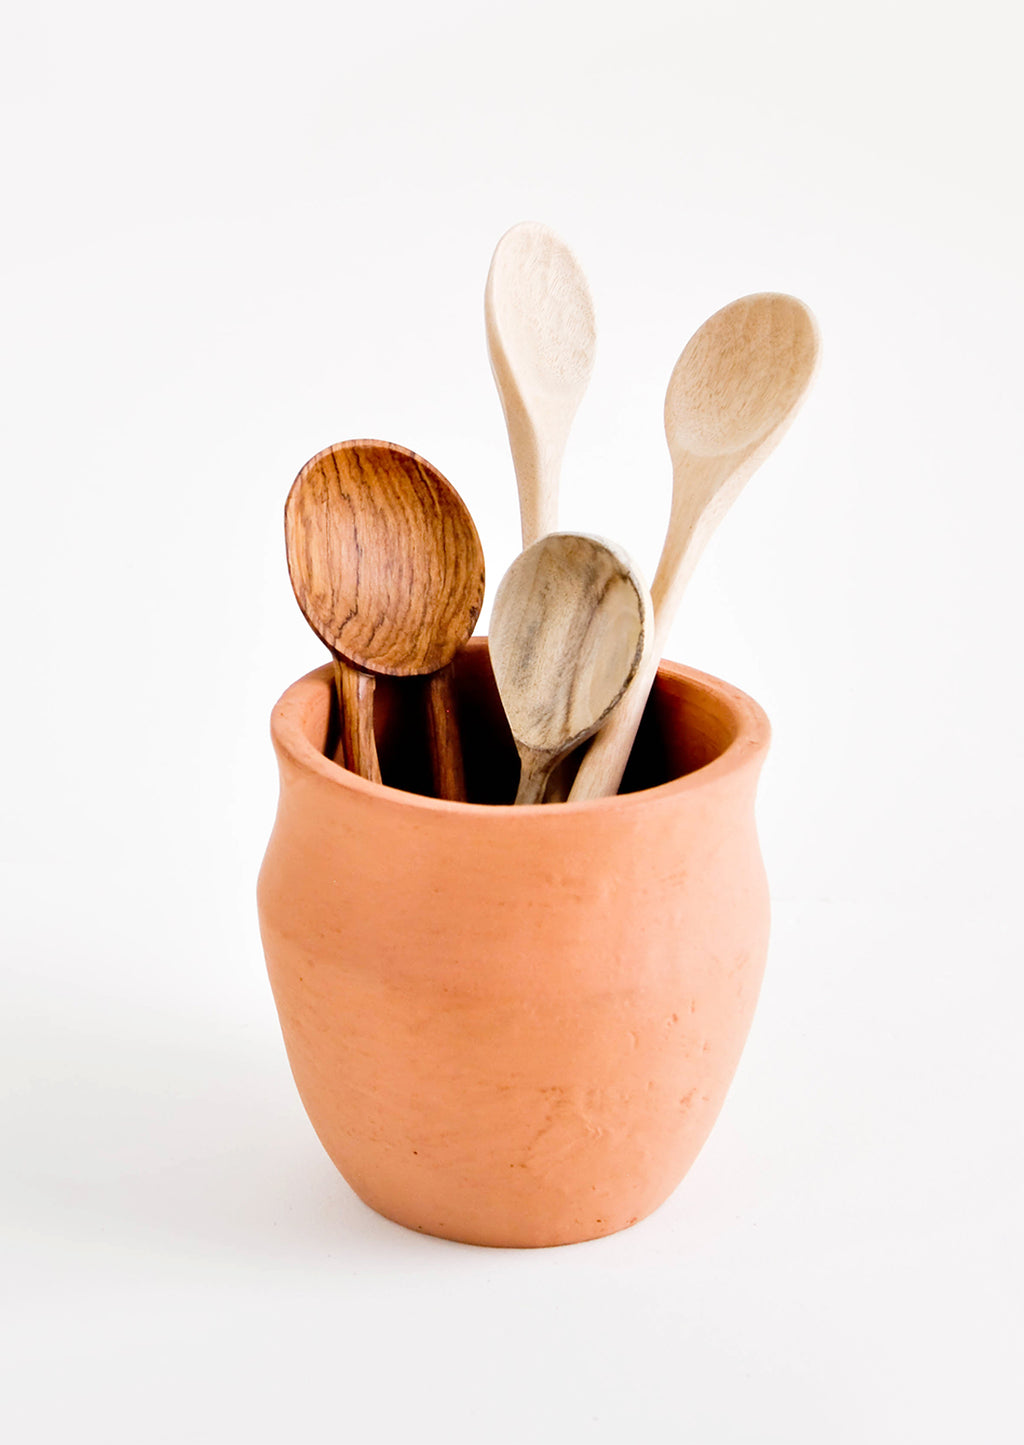 2: An orange rounded terracotta pot with curved lip holding various wooden spoons.